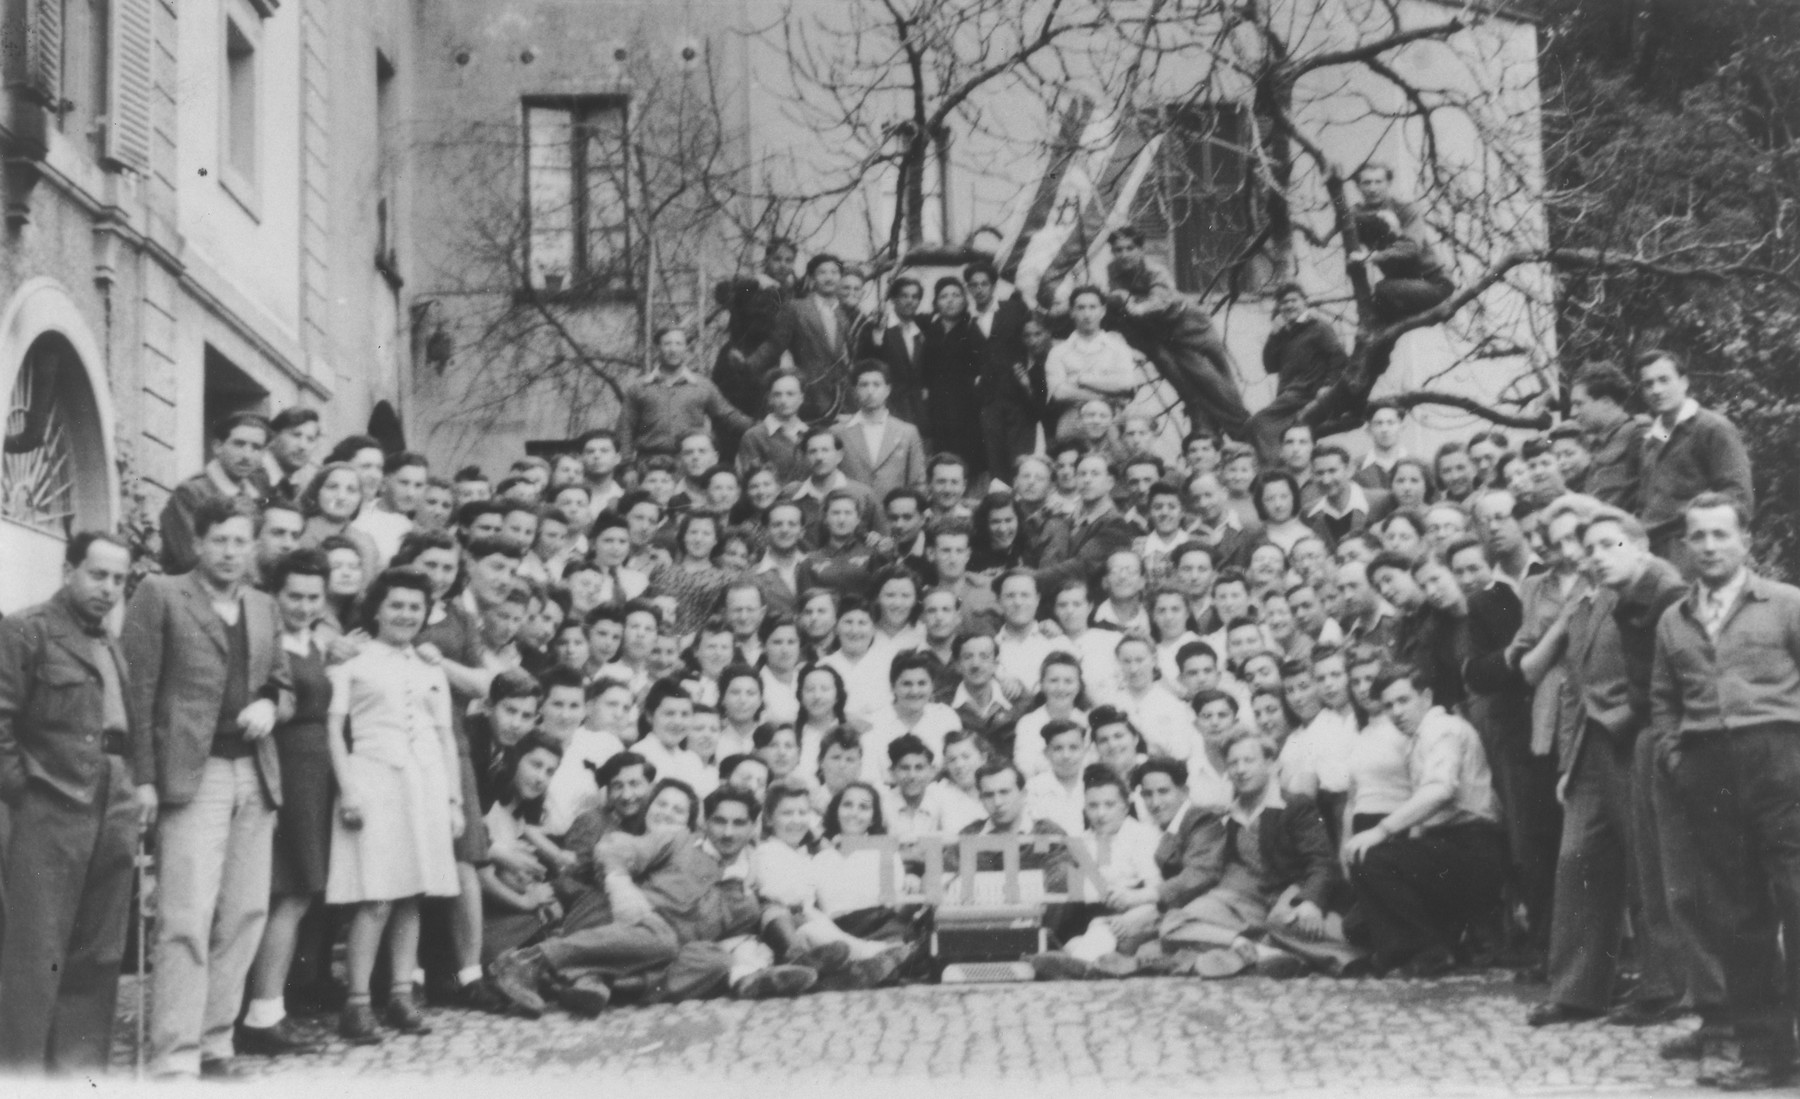 Group portrait of members of Kibbutz Ichud prior to their hunger strike in La Spezia harbor.  Among those pictured are Helcia and Nachcia Stapler.